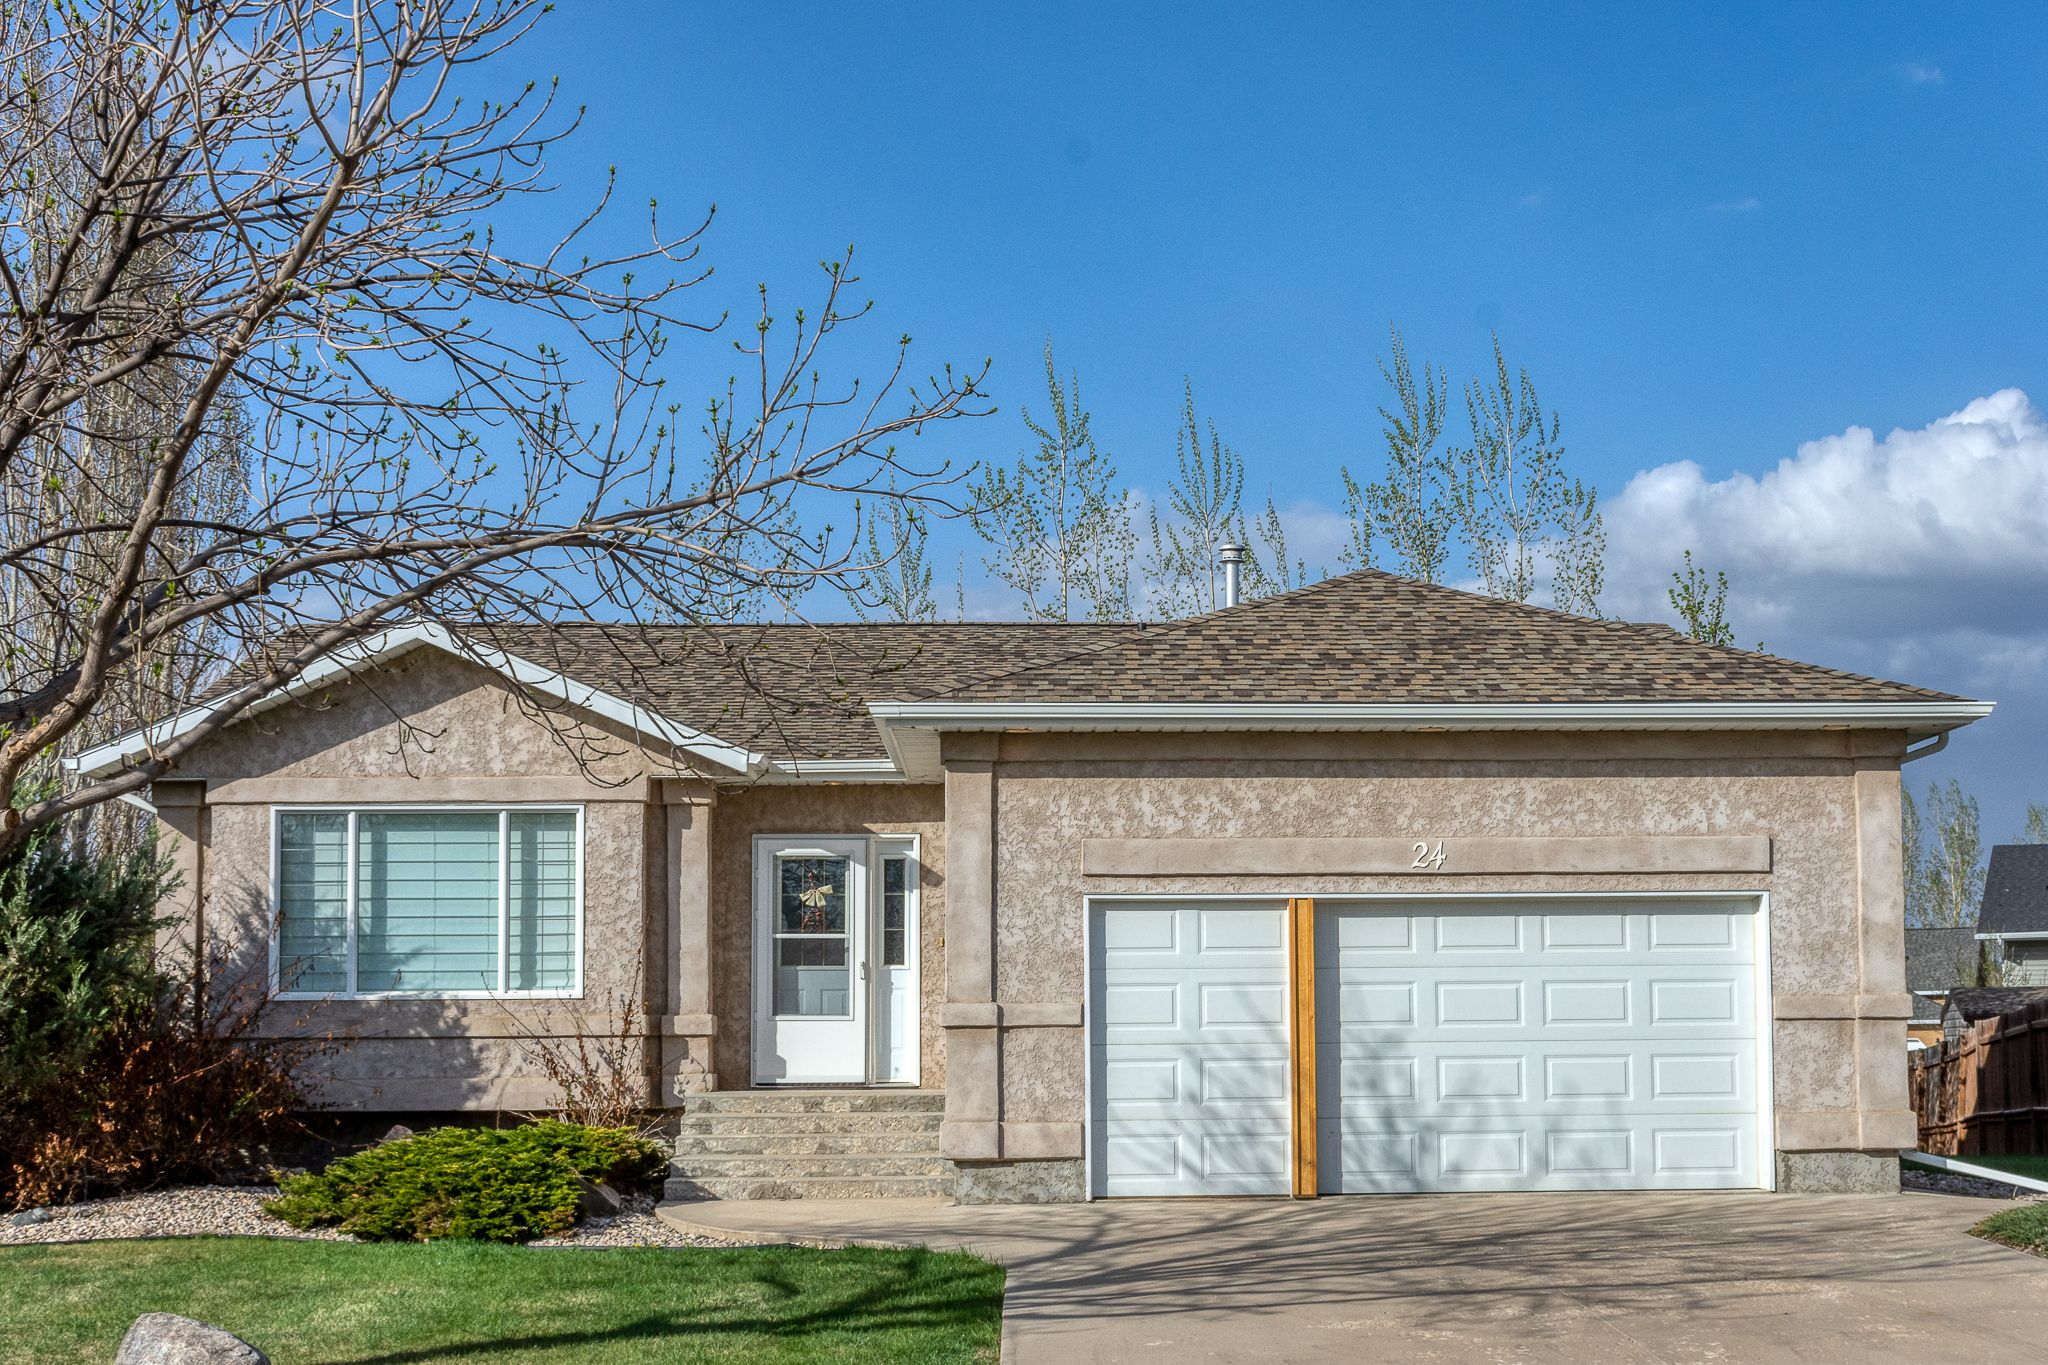 Main Photo: 24 Prout Drive in Portage la Prairie: House for sale : MLS®# 202112218